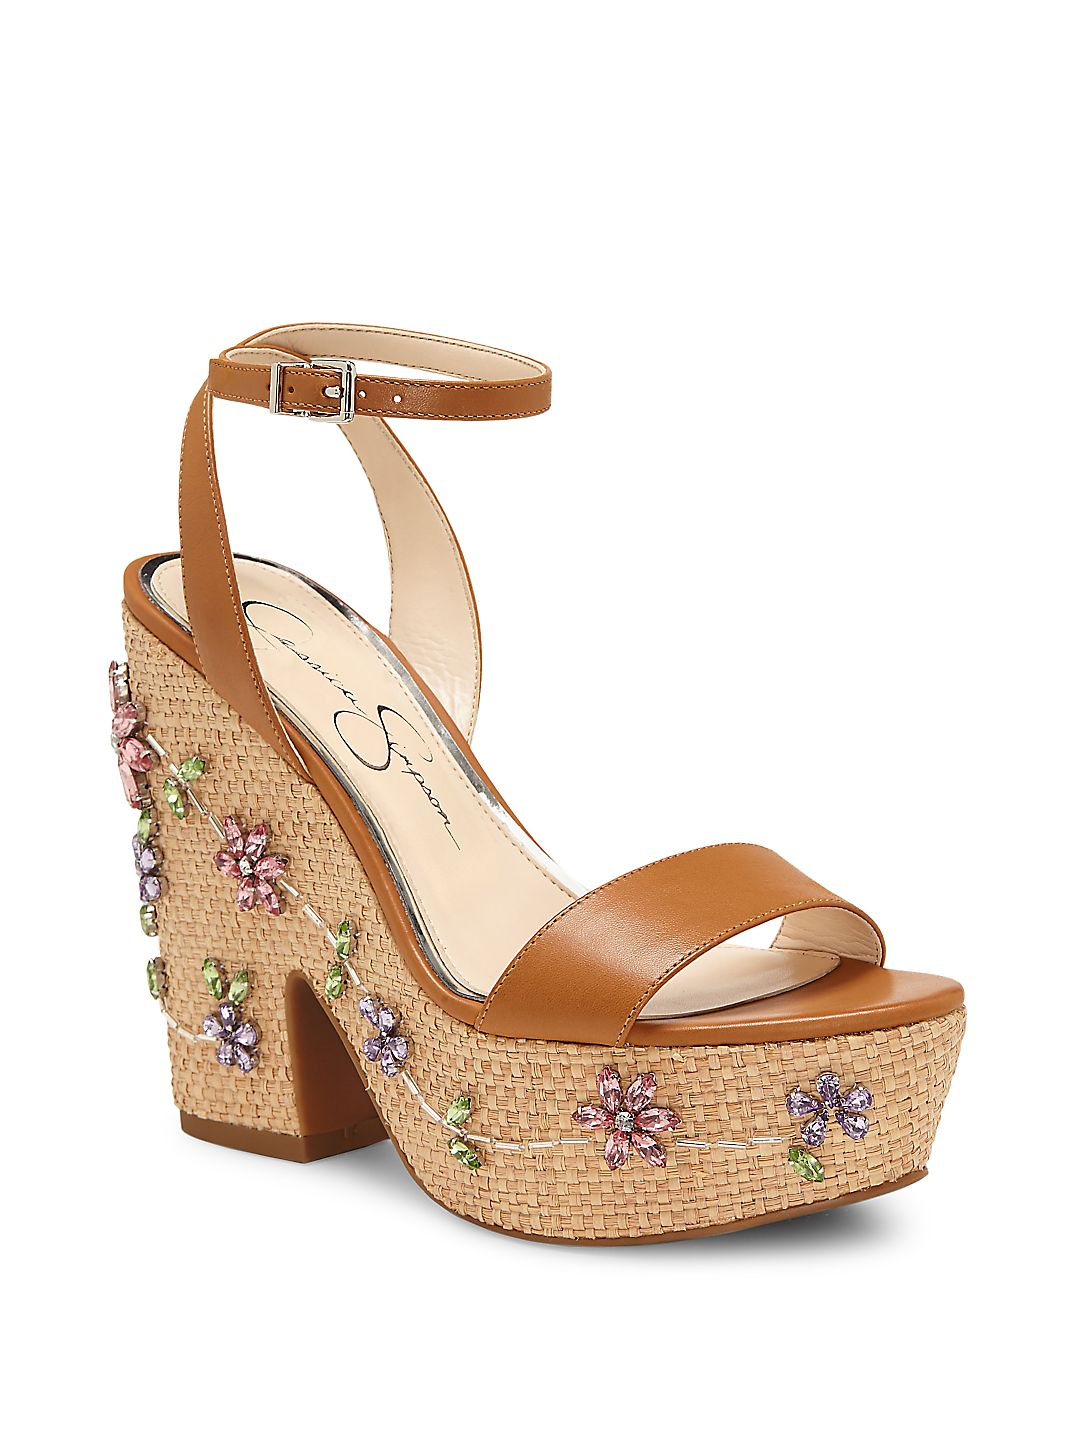 Cressia Leather Ankle-Strap Sandals